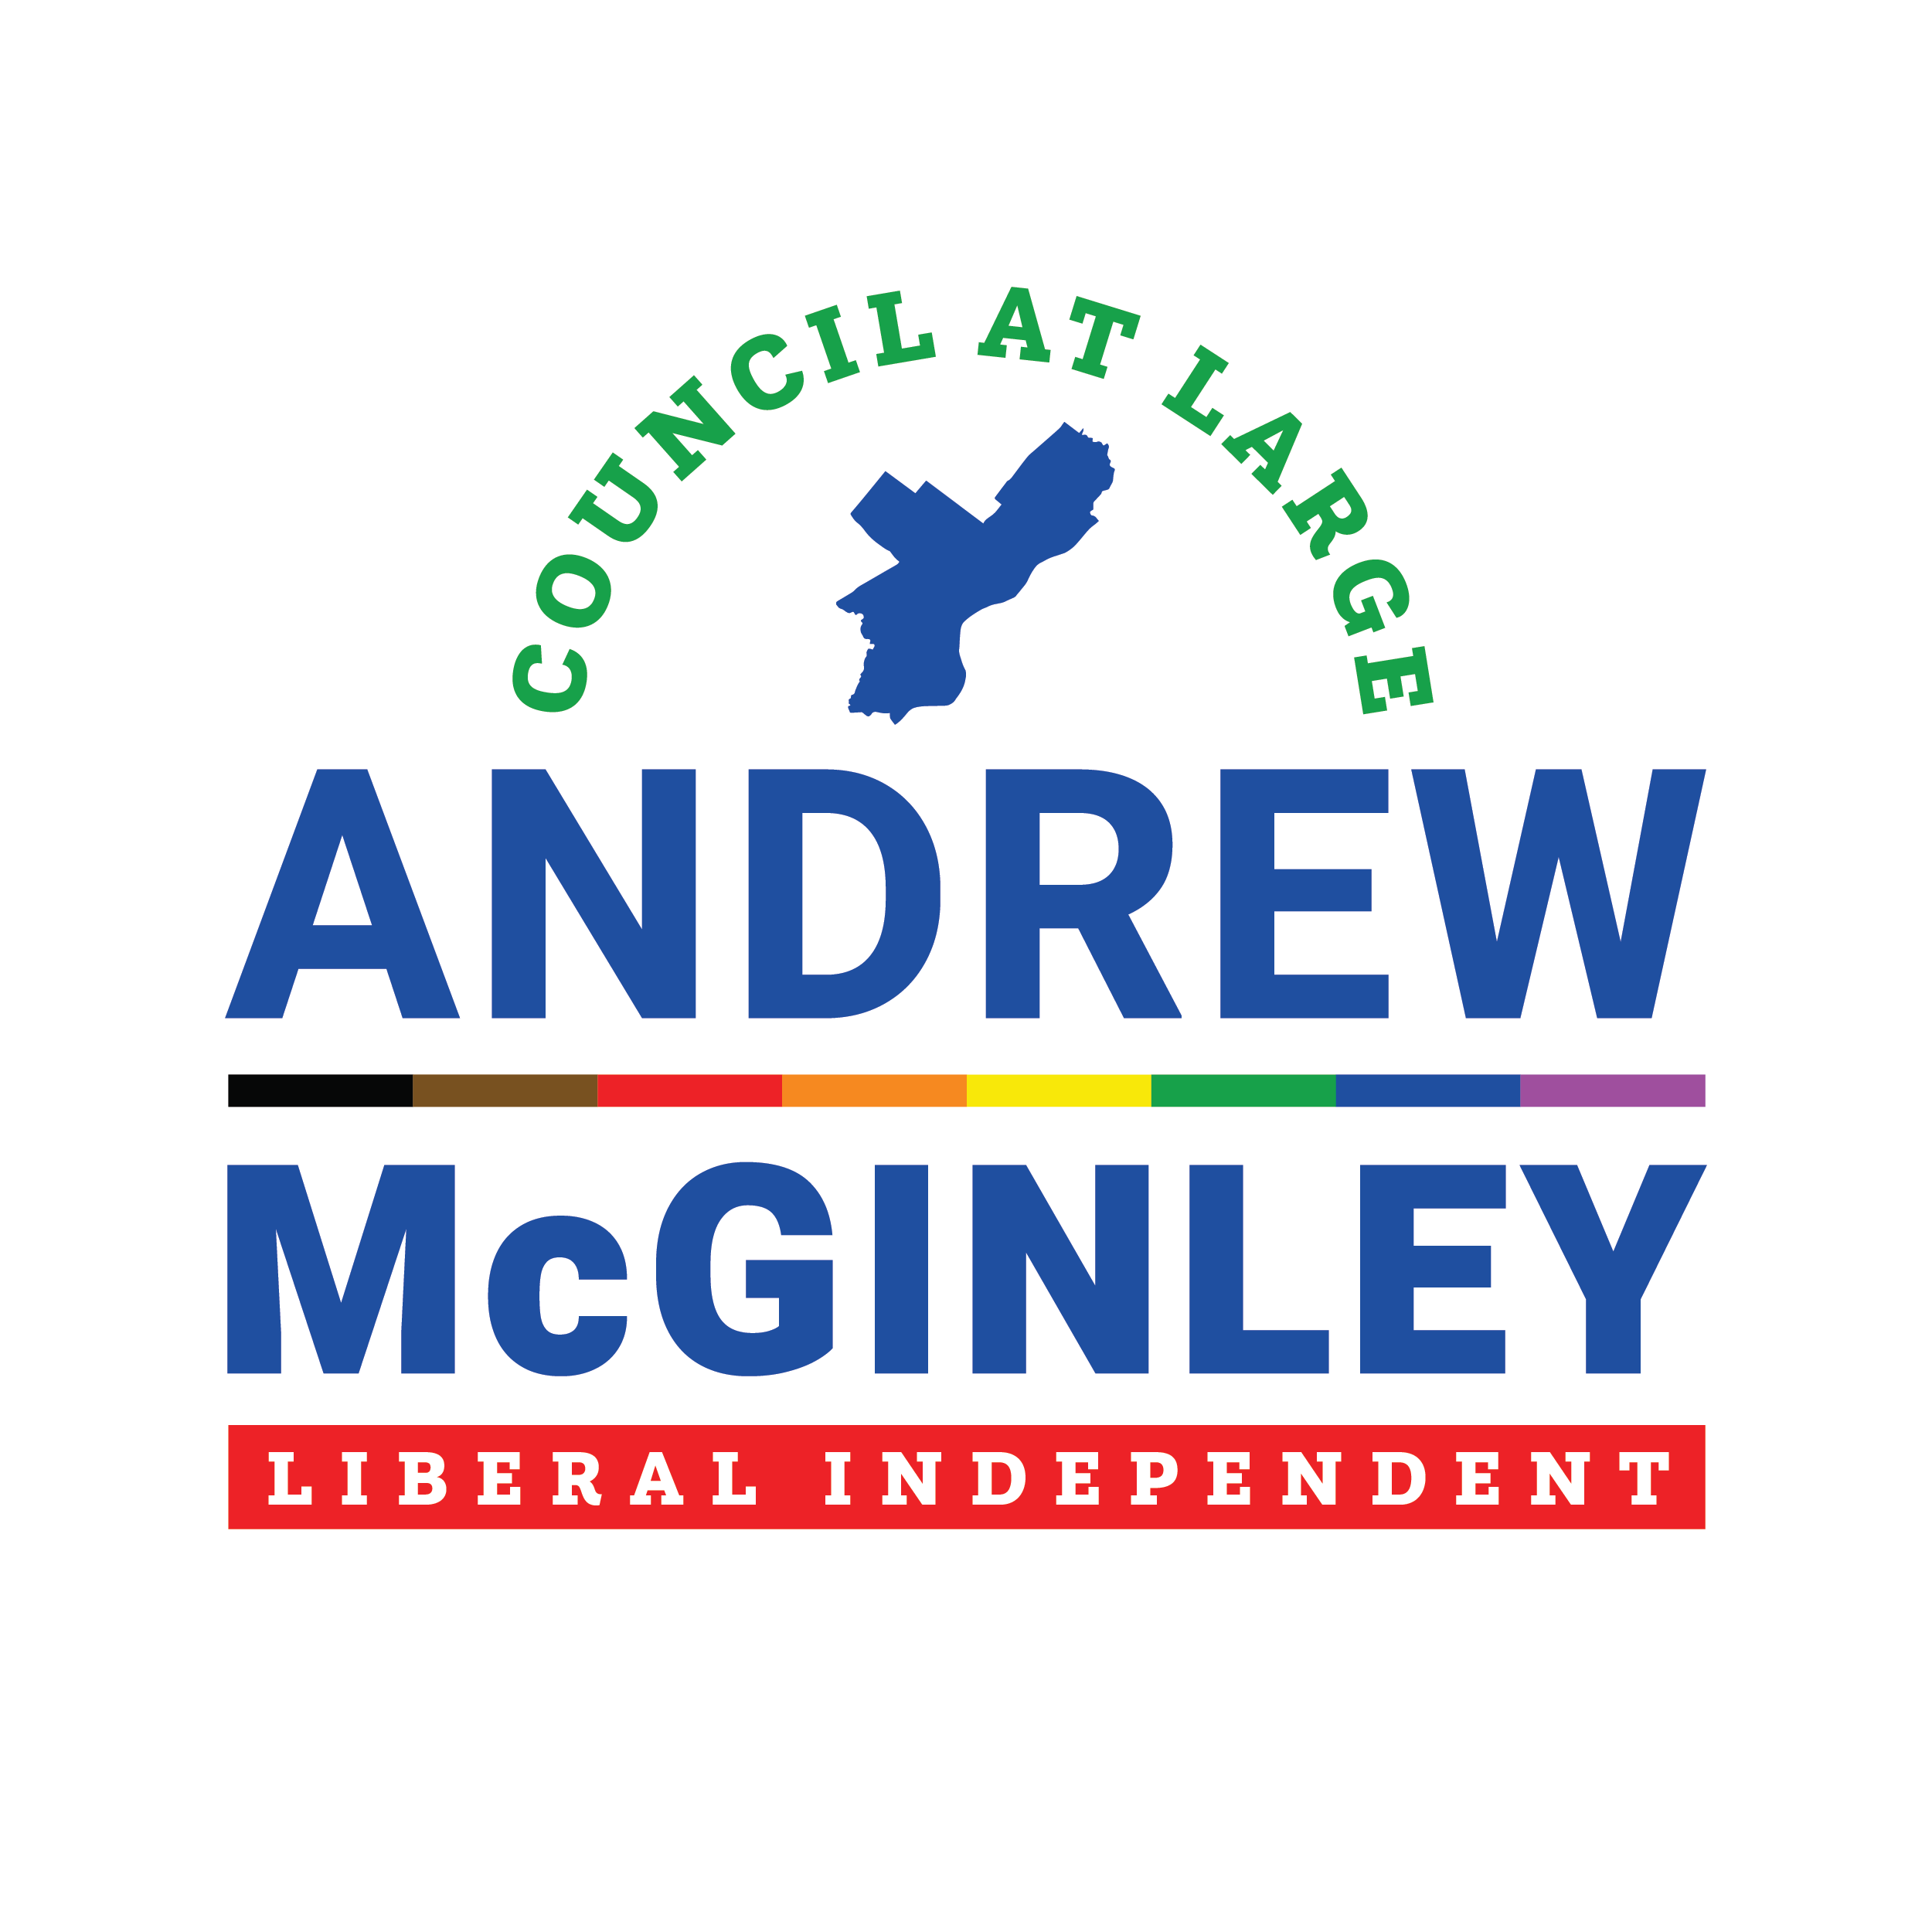 Andrew McGinley Council at Large